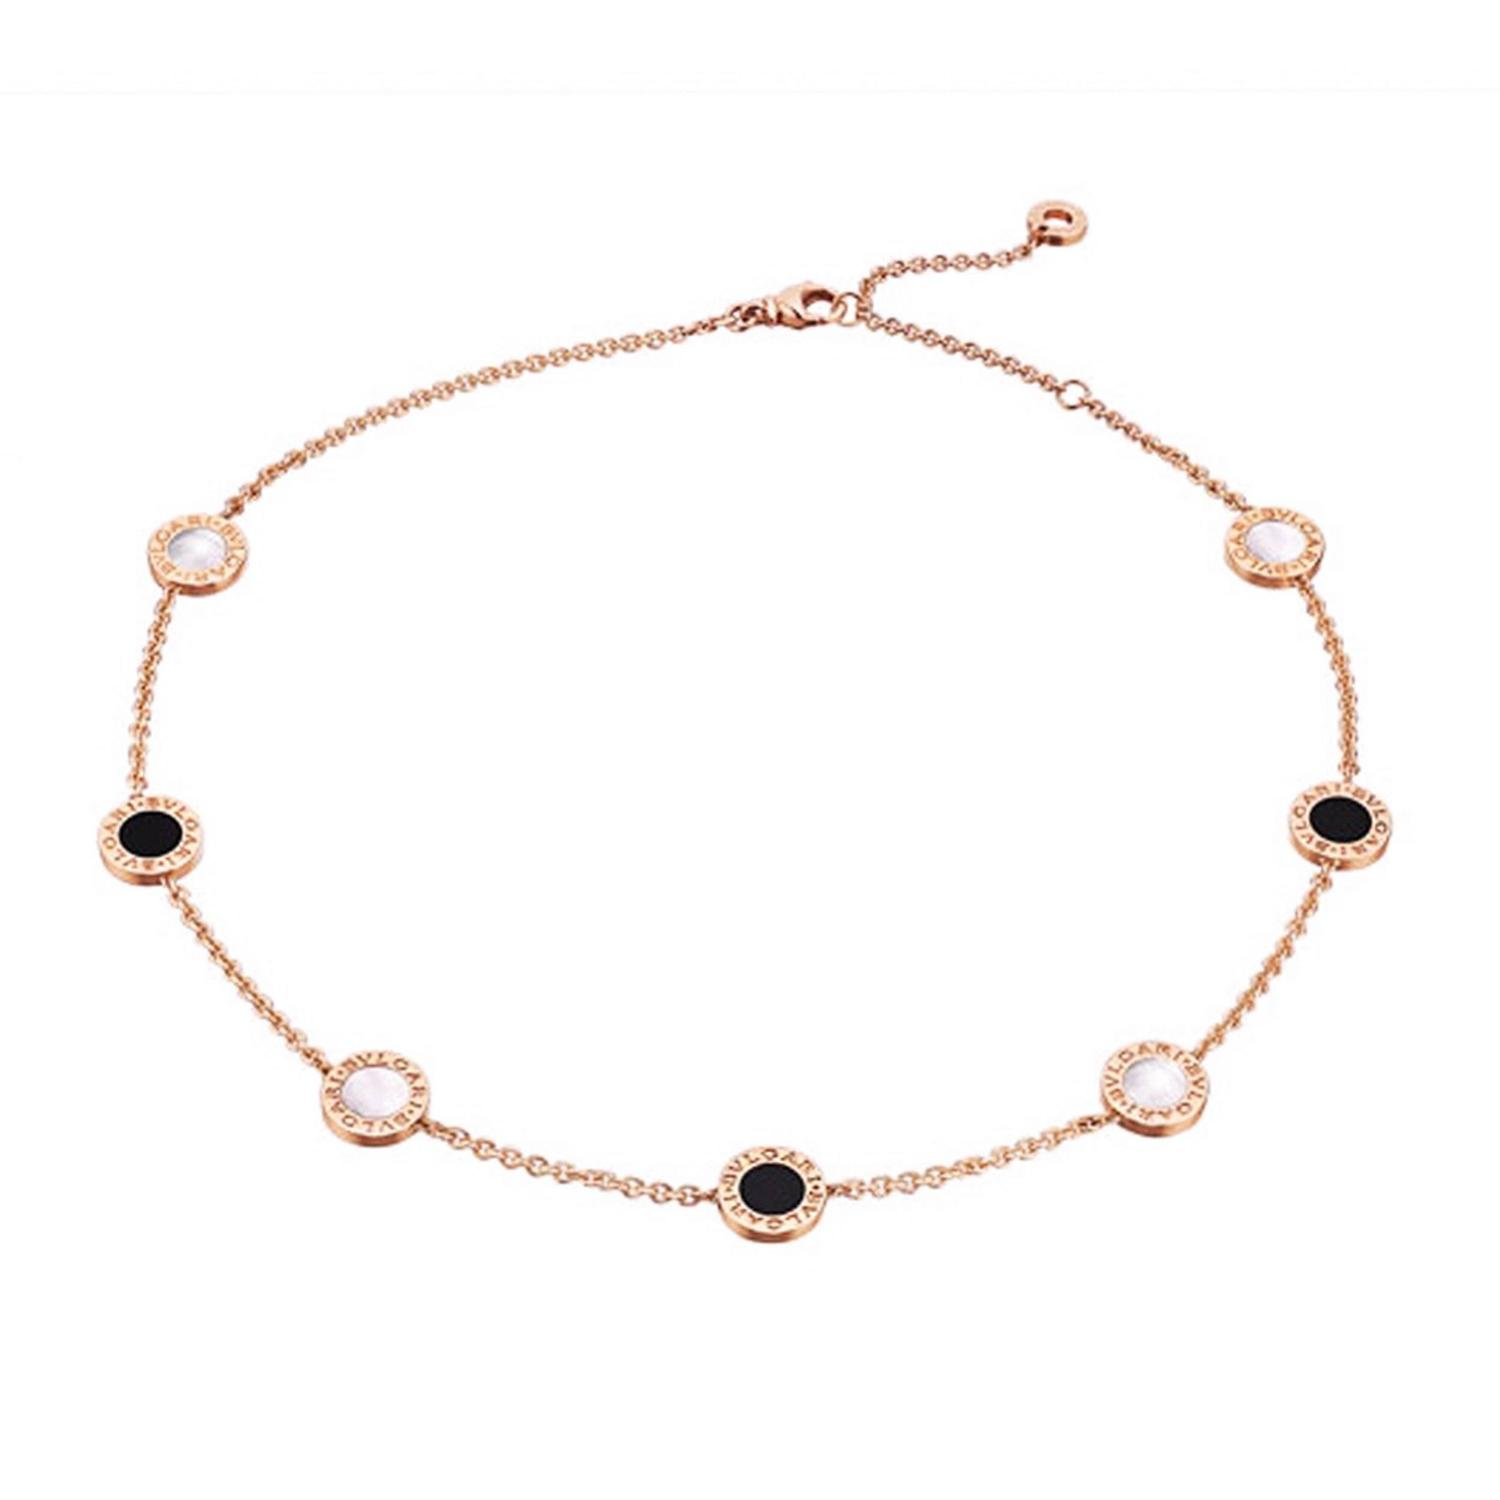 Bulgari more necklaces 47 for sale at 1stdibs rose gold mother of pearl amp onyx necklace by bulgari mozeypictures Image collections